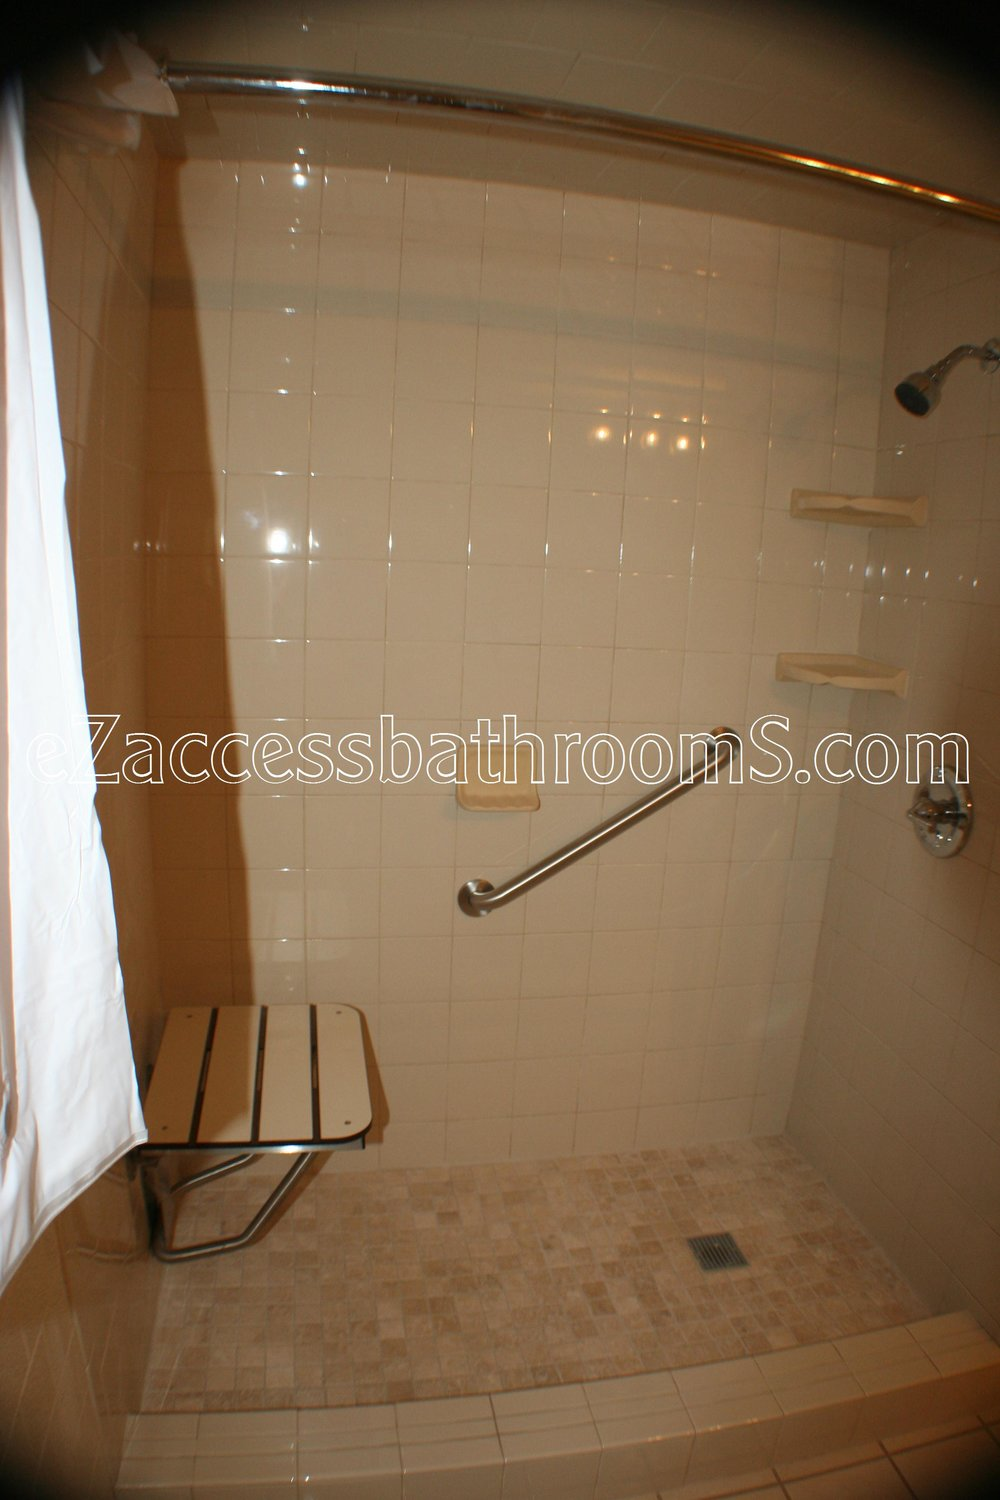 TUBTOSHOWERS CONVERSIONS EZACCESSBATHROOMS.COM 832202843 1WILSAN; 027.JPG